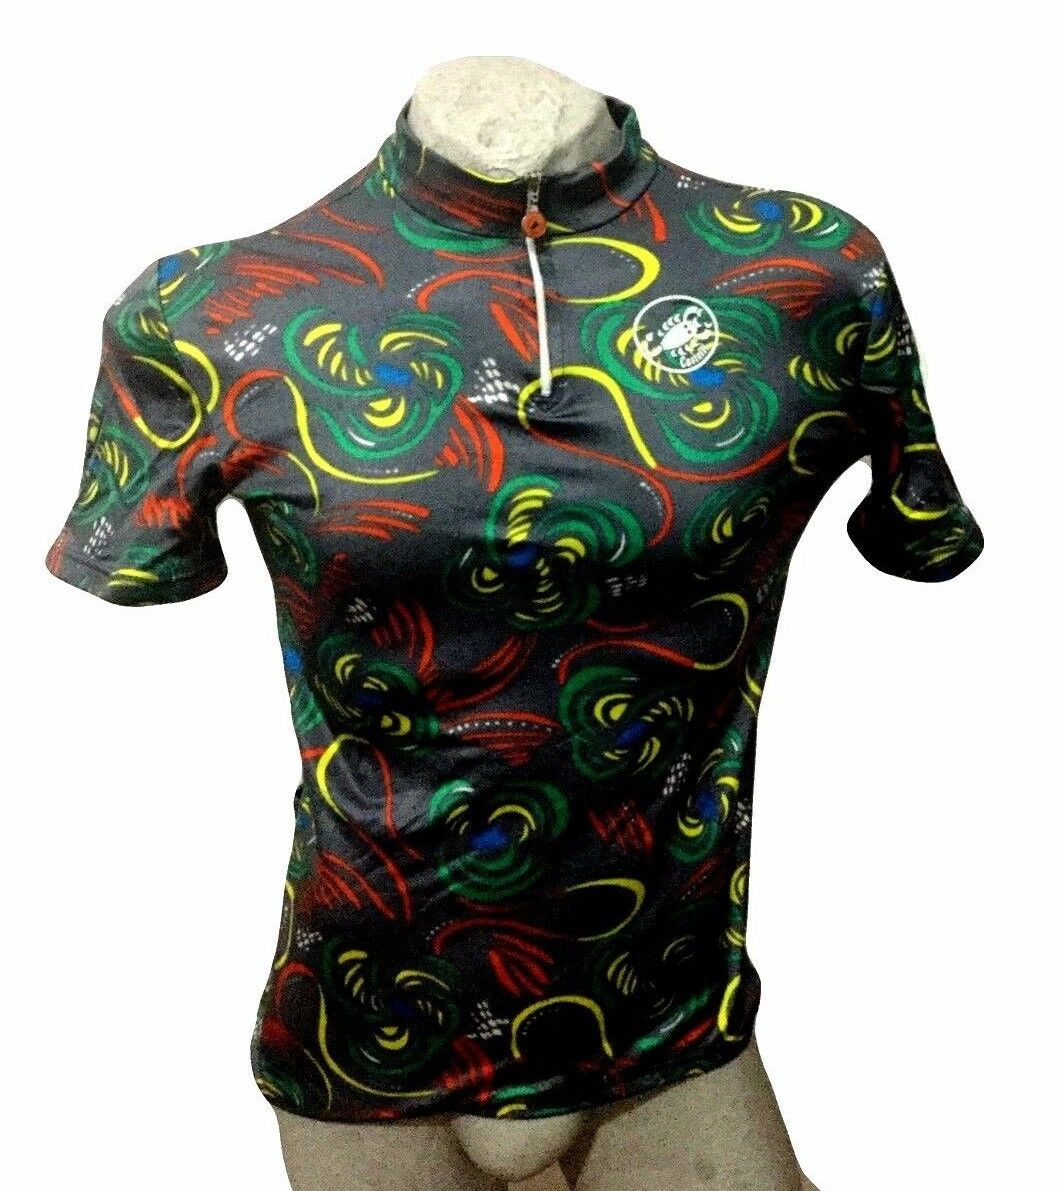 MAGLIA CICLISMO MADE CASTELLI SHIRT TRIKOT MAILLOT JERSEY MADE CICLISMO IN ITALY VINTAGE 7598a0